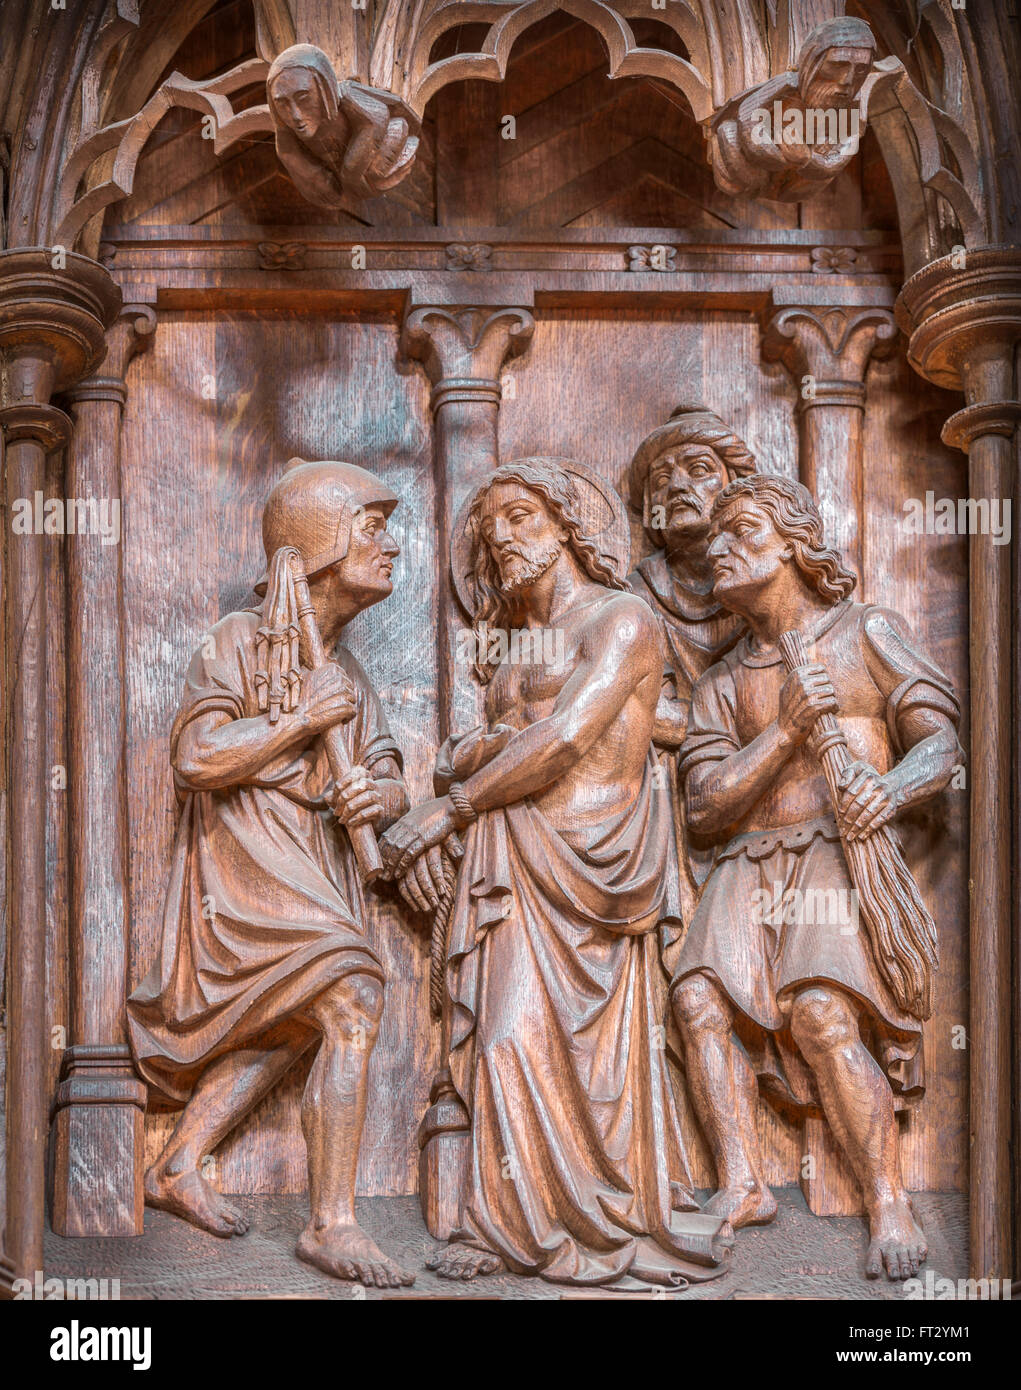 Jesus is flogged by roman soldiers, one of a series of fourteenth century wooden carvings illustrating the life - Stock Image